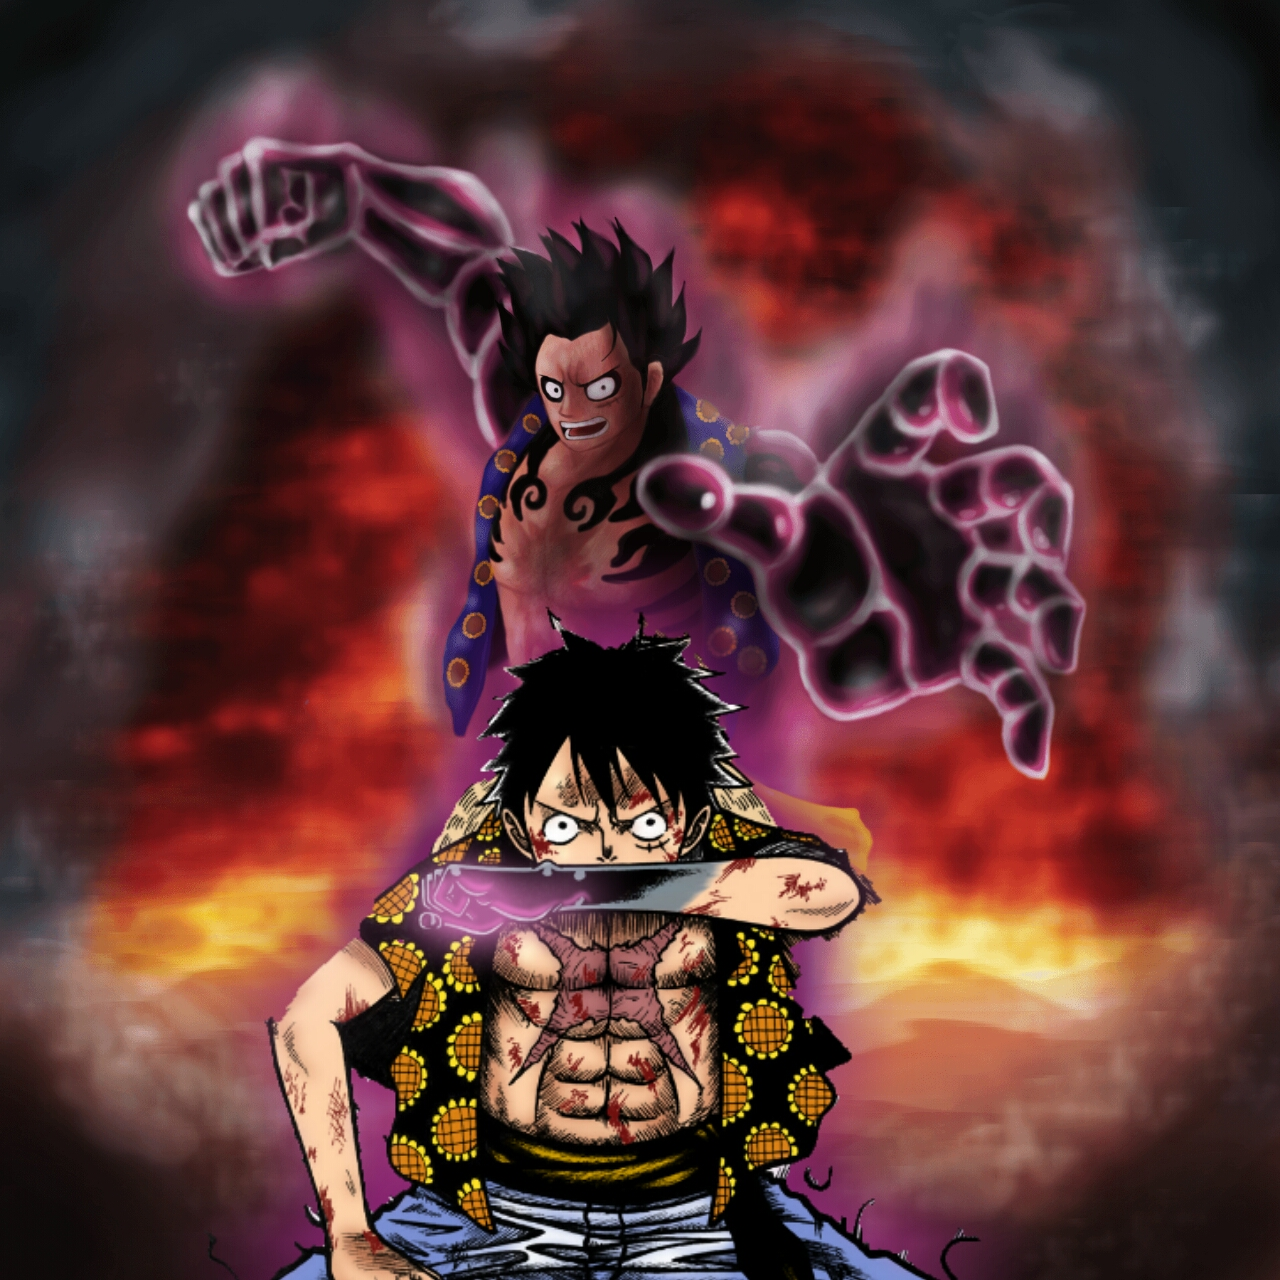 """The mechanics of gear fourth are quite a bit more complicated than those of gear second or gear third, but the driving theme seems to be """"compression"""". luffy has mastered his 4th gear - Anime Teory"""